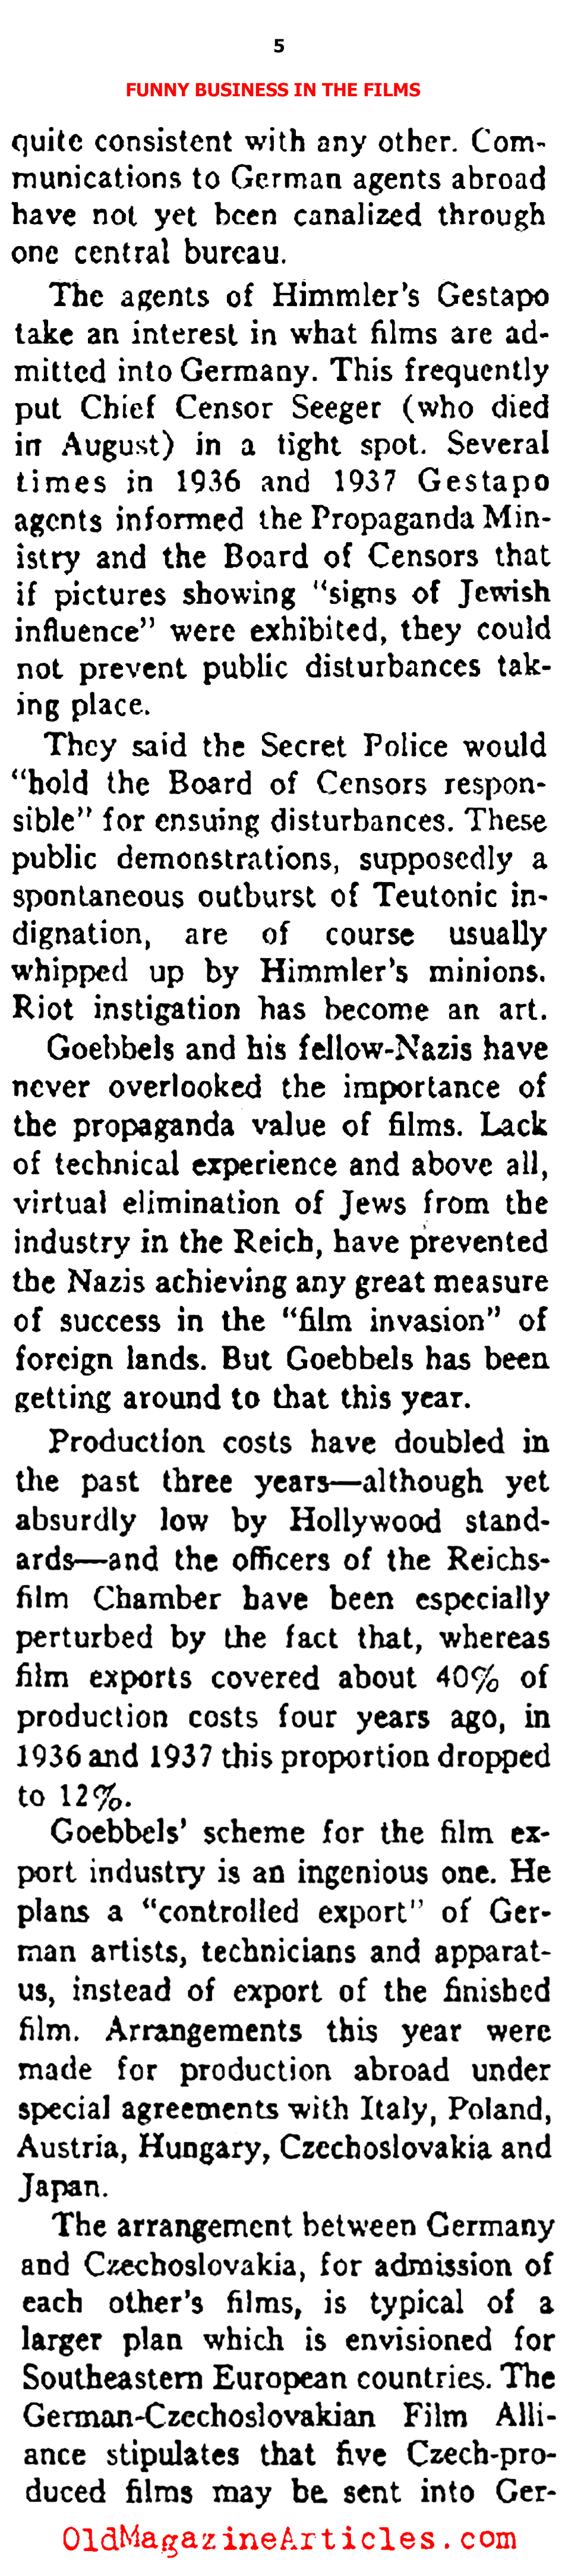 The Nazi Hollywood (Ken Magazine, 1938)